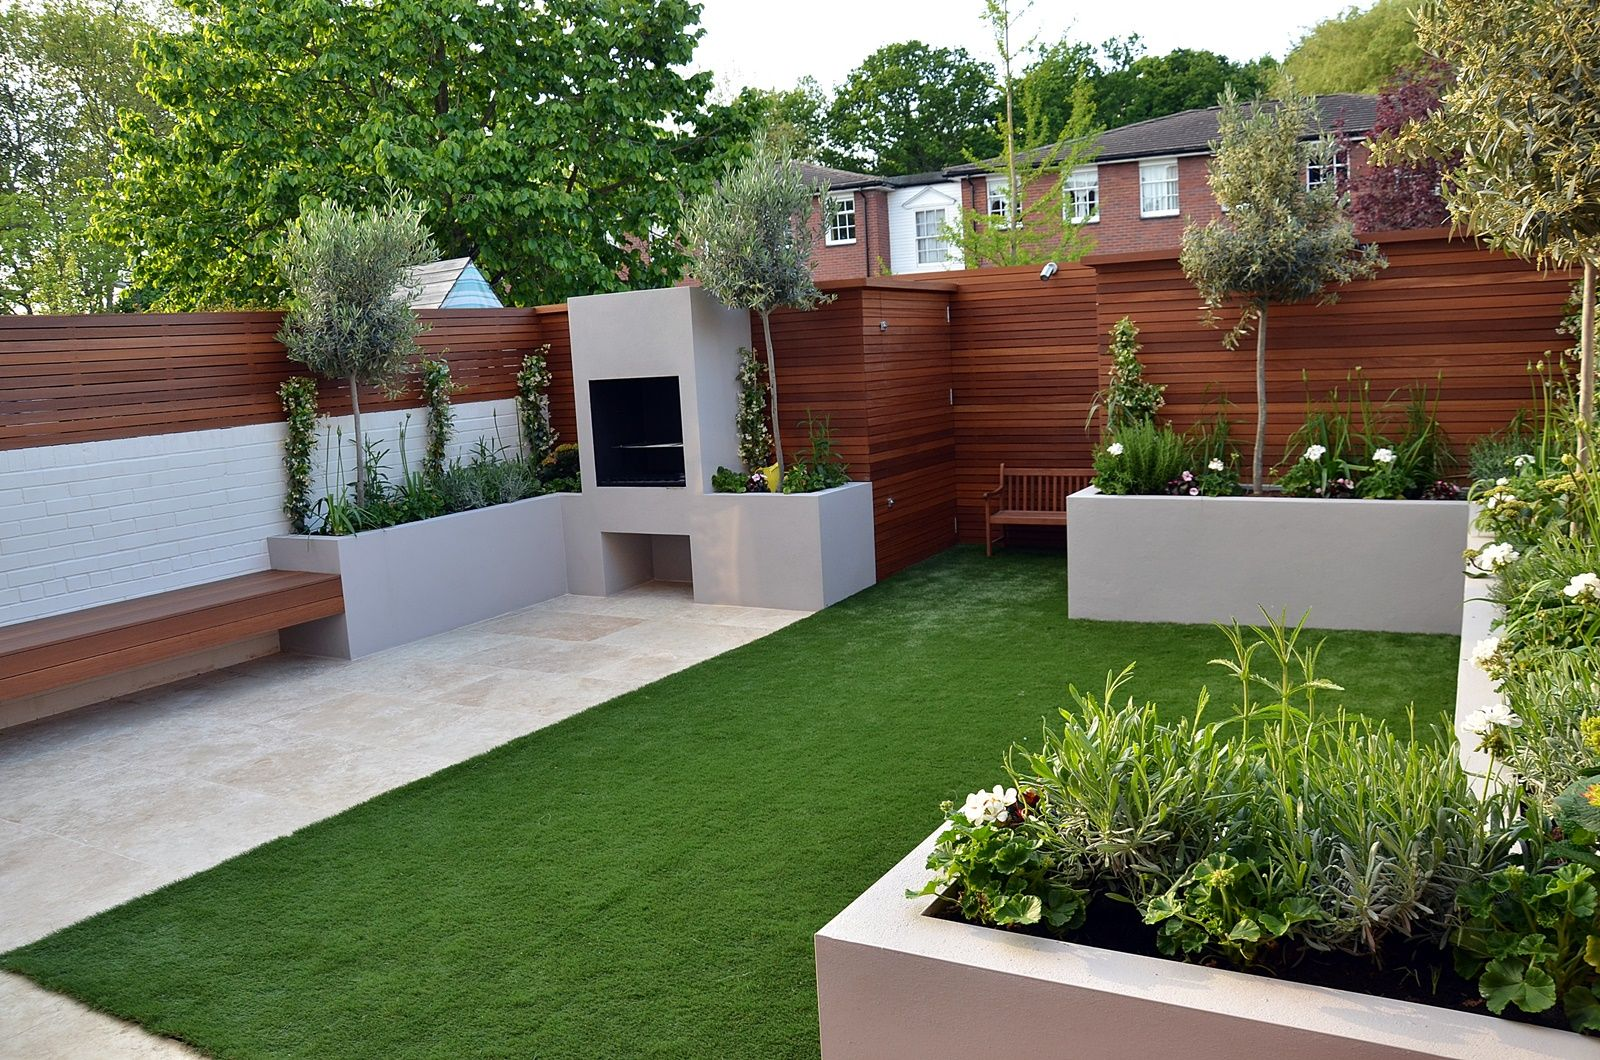 Are You Looking For Gardening Advice? Read On Small